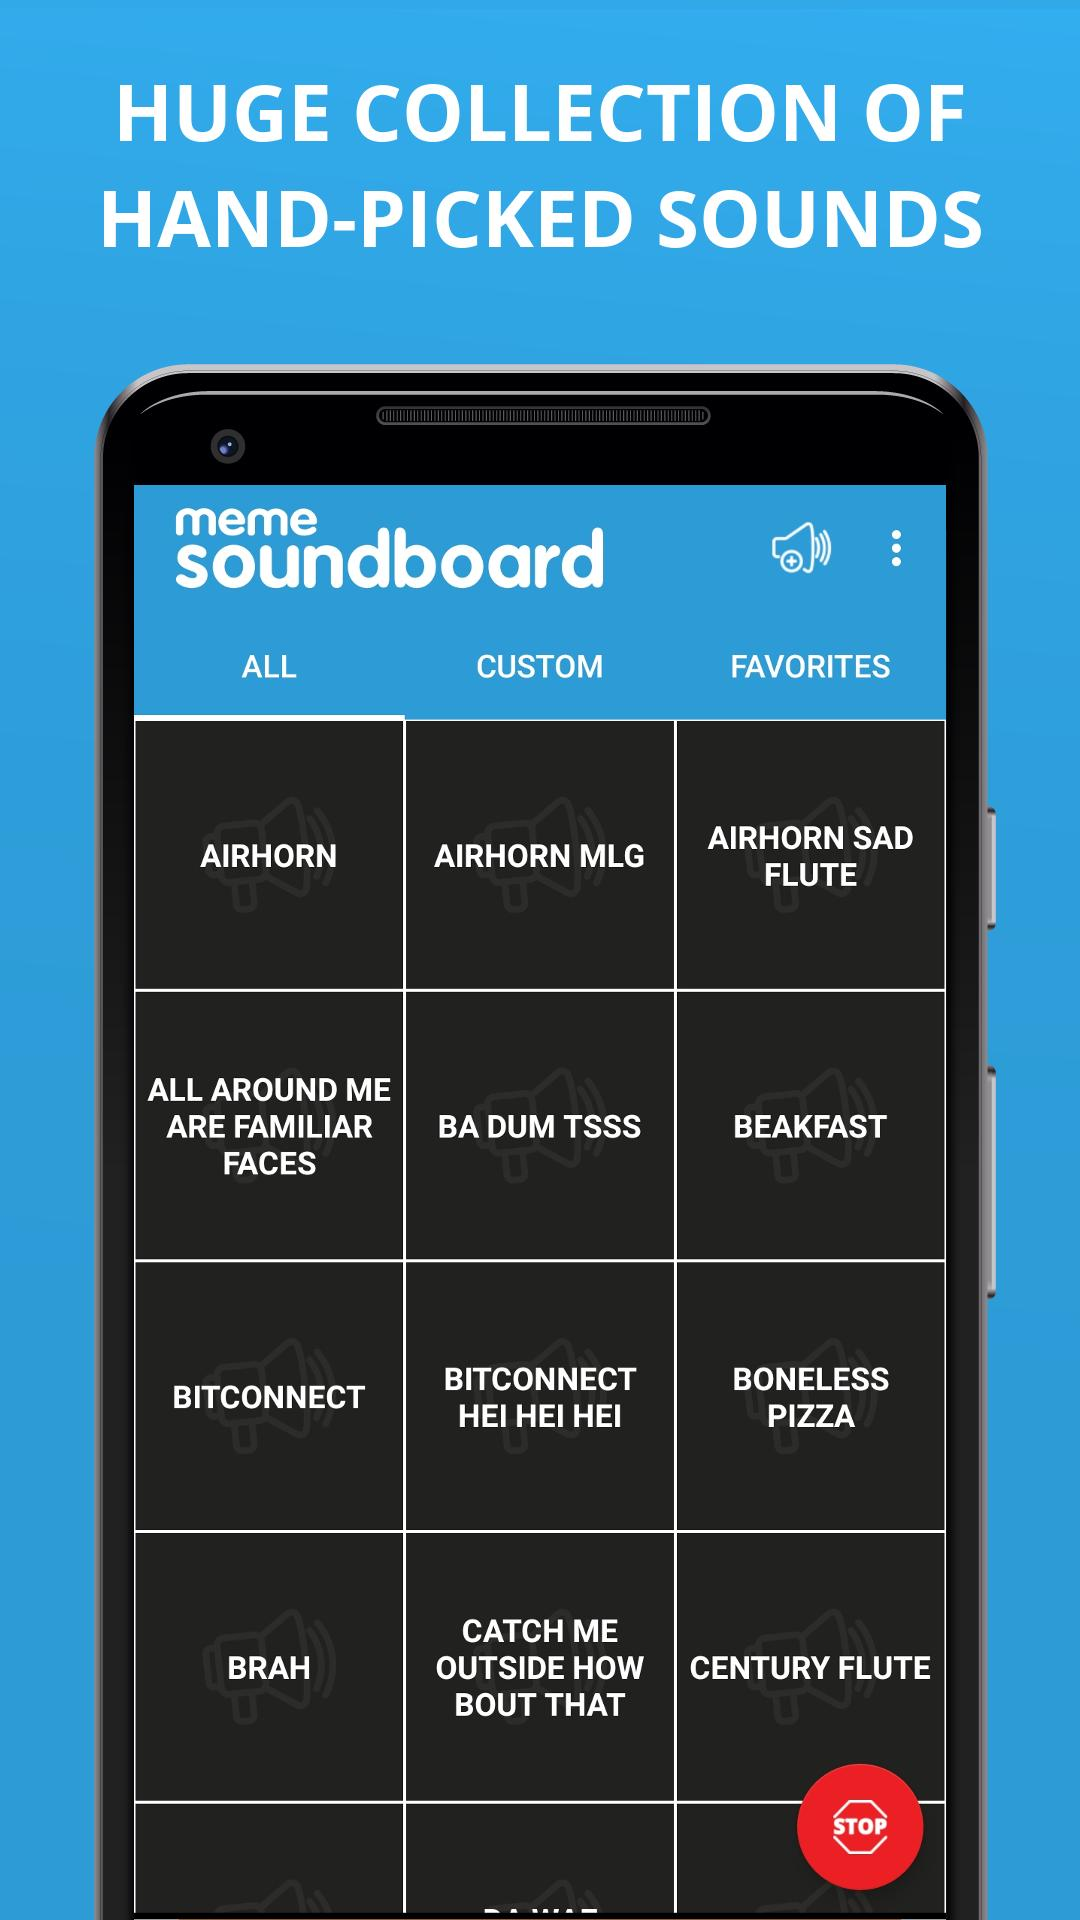 Meme Soundboard for Android - APK Download